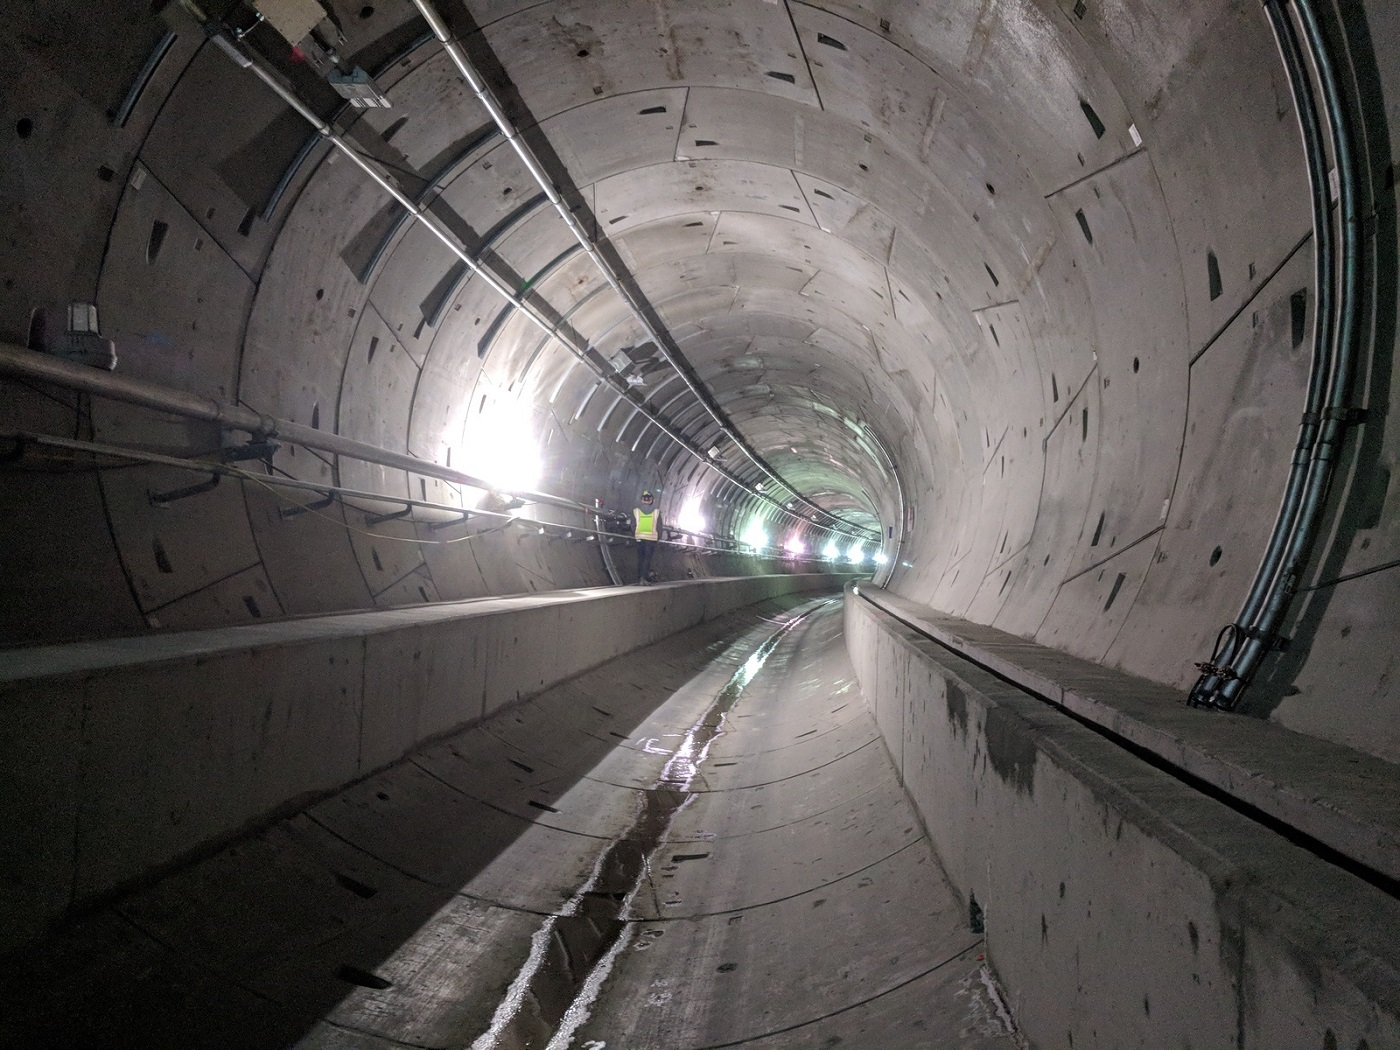 Worker walking in the empty Northgate tunnels prior to rail installation